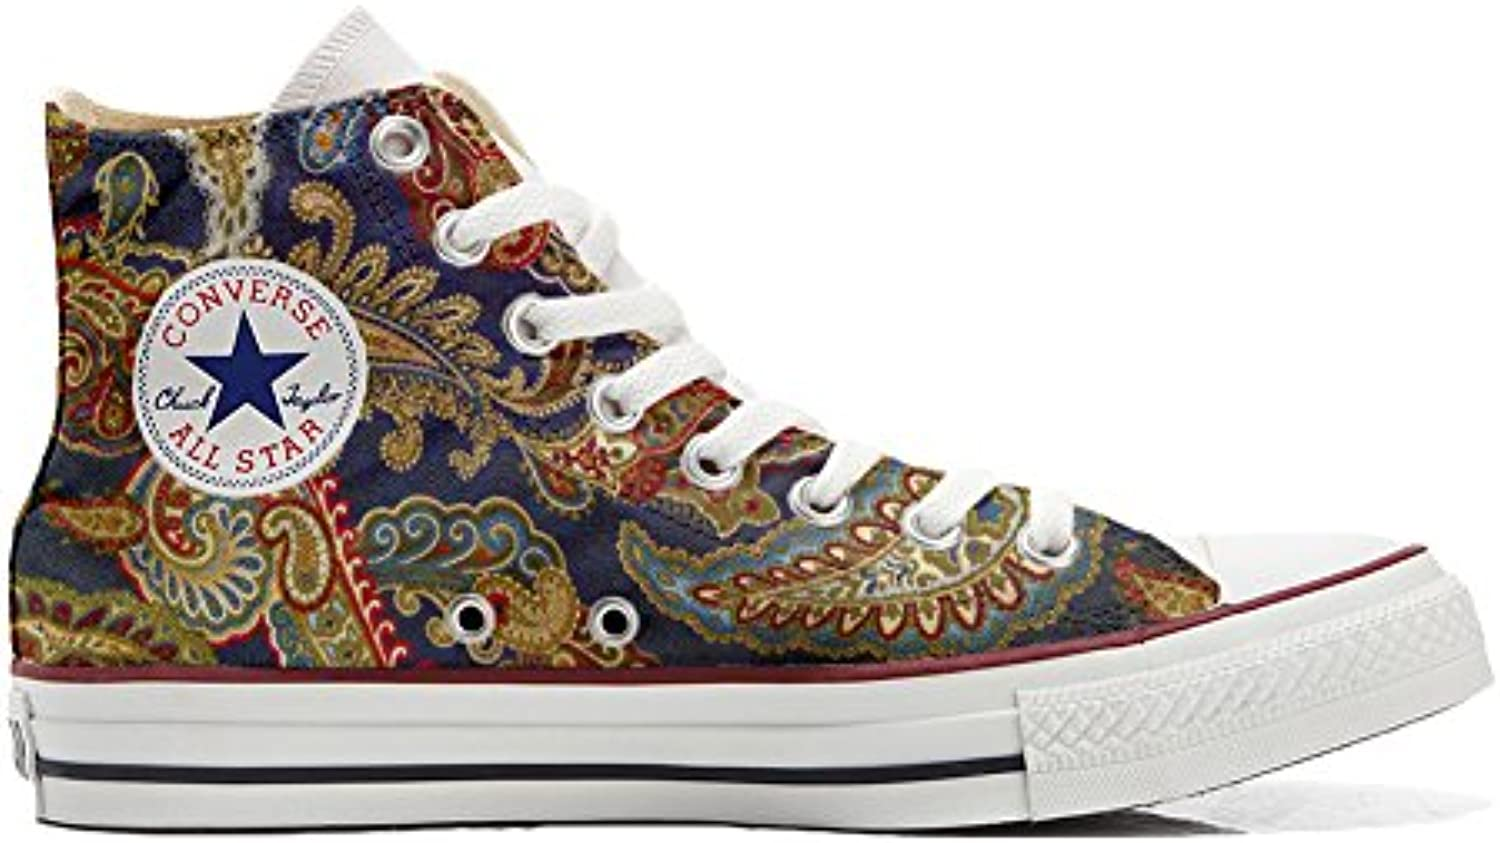 mys Converse All Star Customized Unisex   Personalisierte Schuhe (Handwerk Produkt) High Size 32 EU